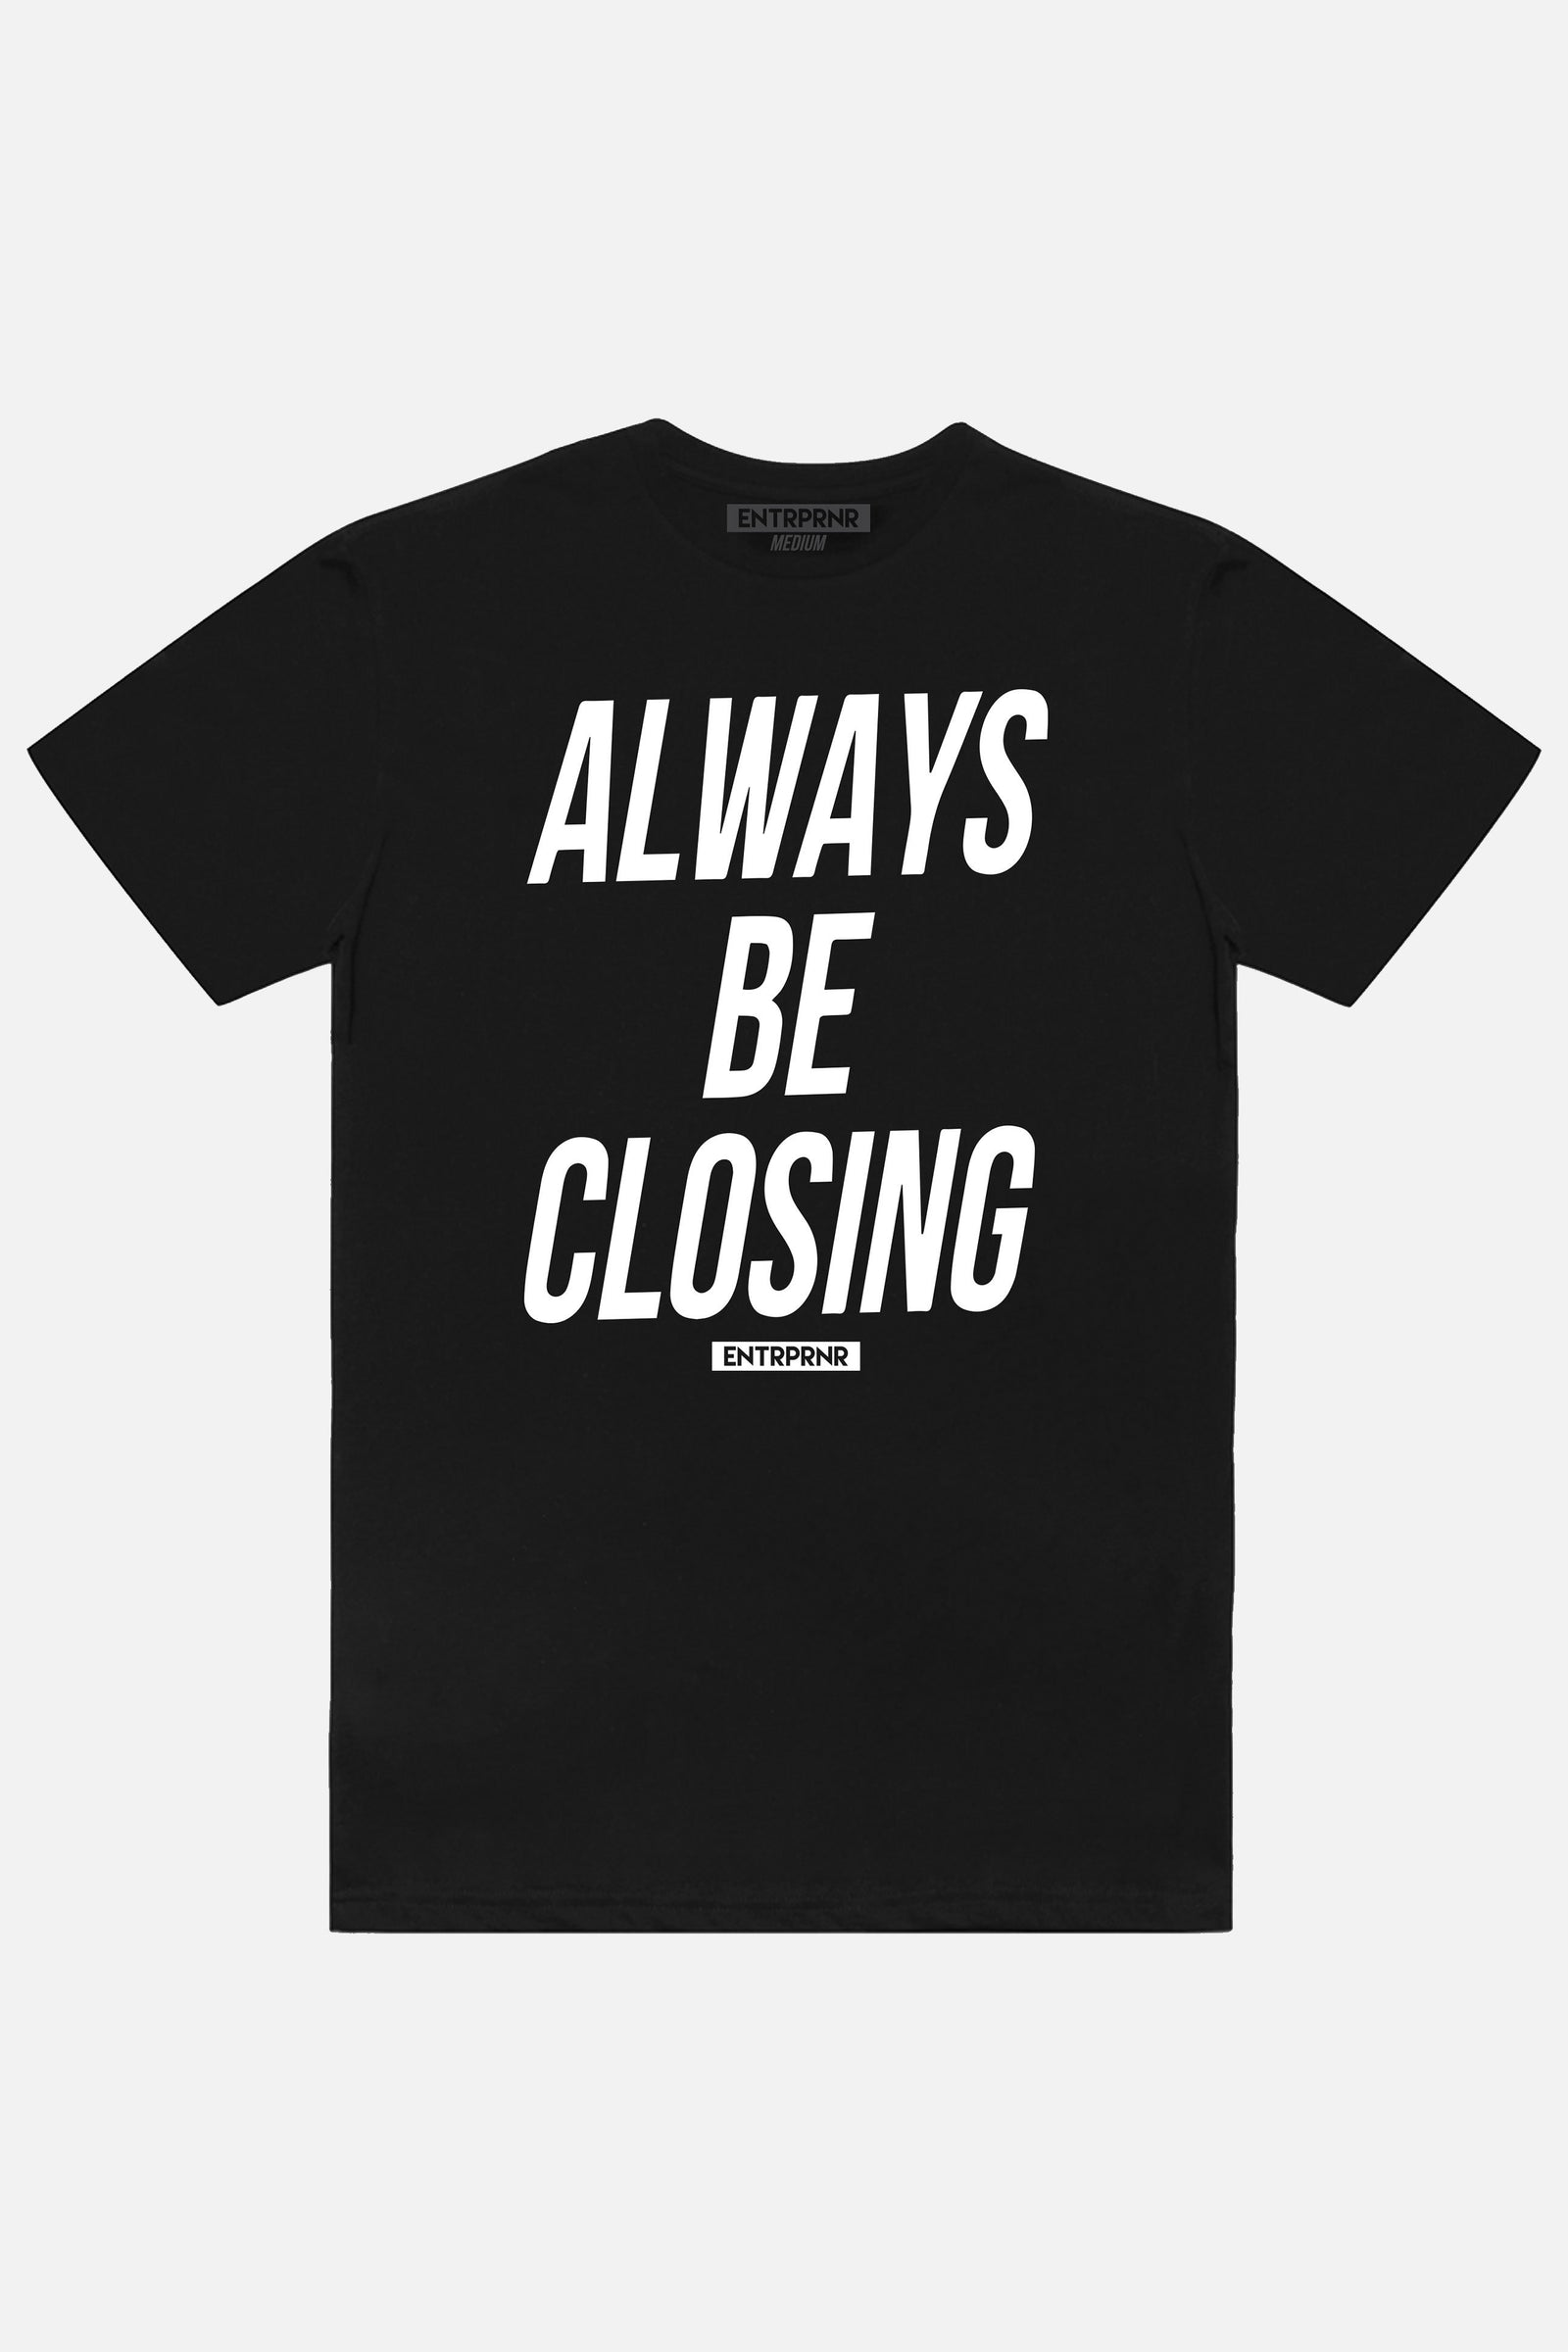 Always Be Closing ENTRPRNR Tee - Black - ENTRPRNR® | The Entrepreneur's Clothing Brand. | Stagnancy is the Enemy. Action is King.